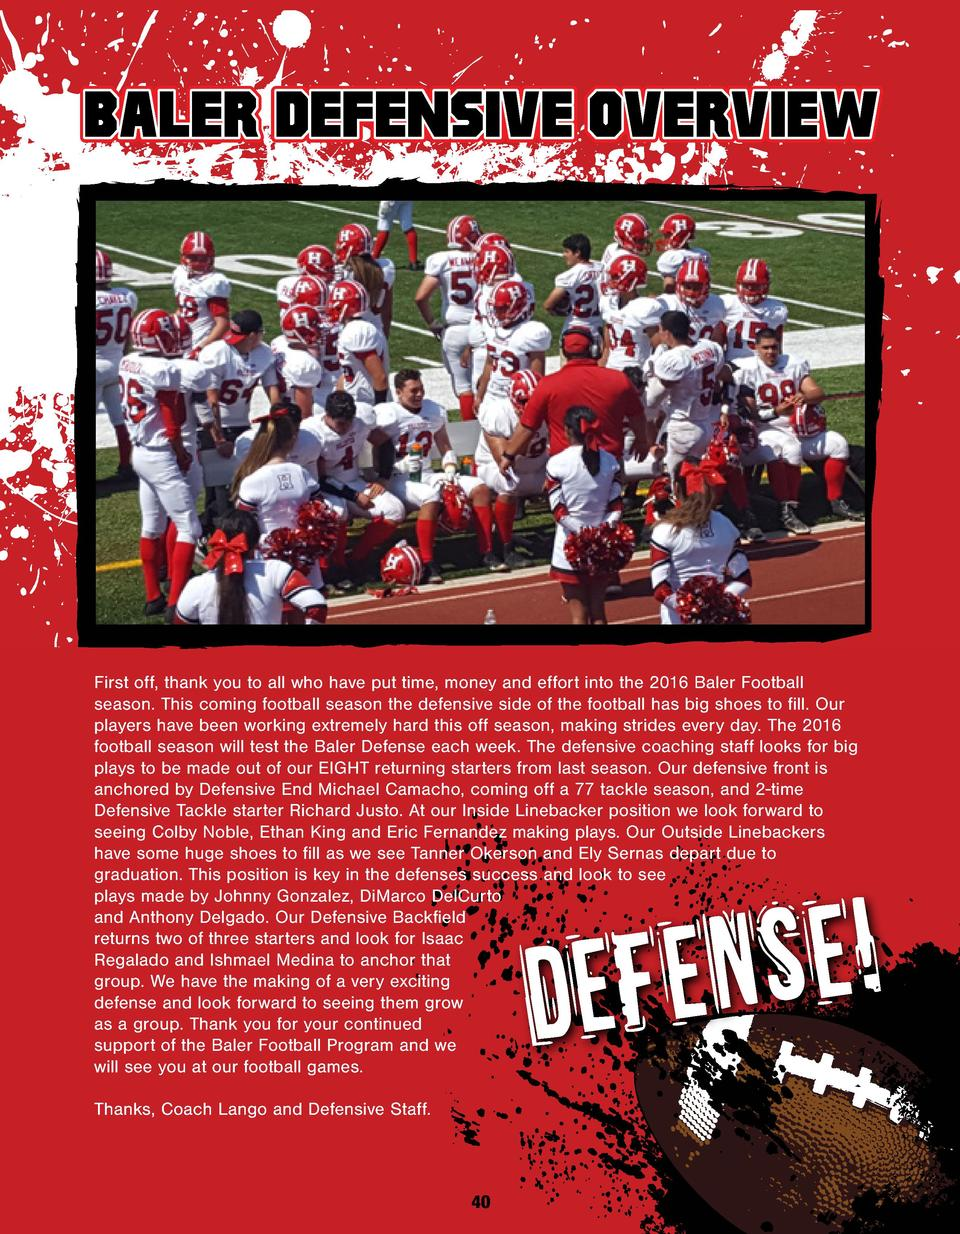 BALER DEFENSIVE OVERVIEW  First off, thank you to all who have put time, money and effort into the 2016 Baler Football sea...